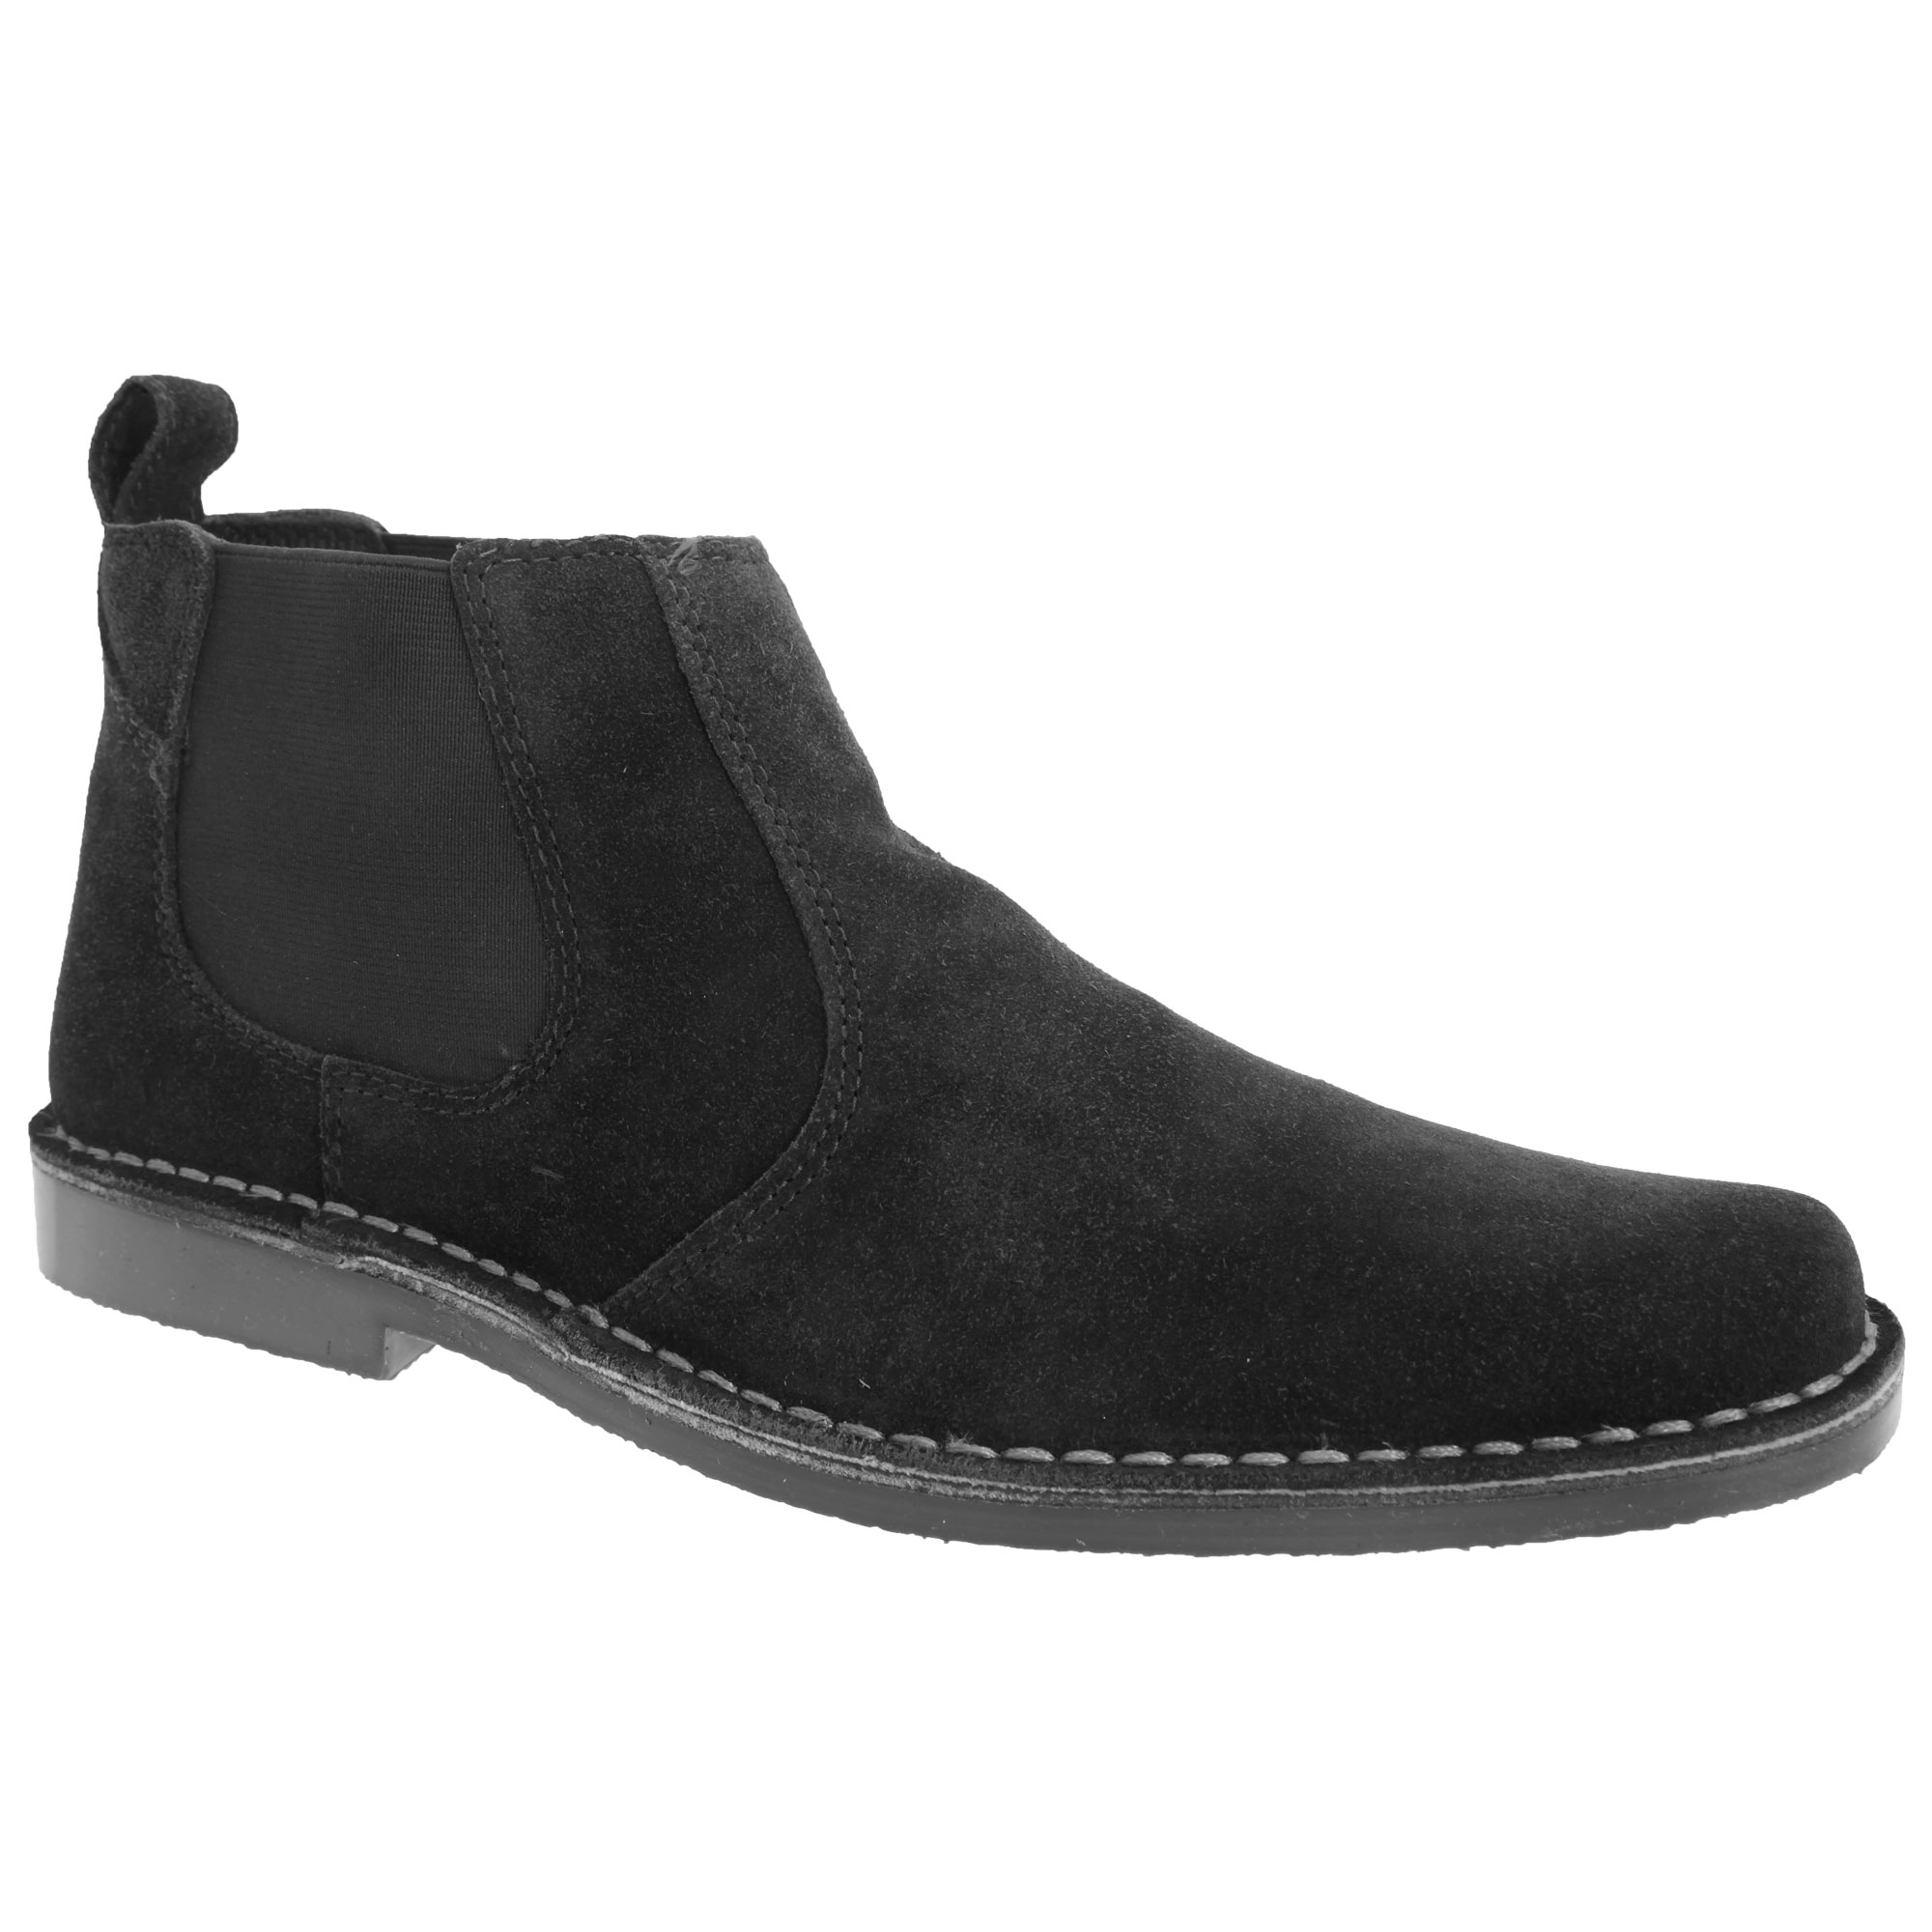 roamers mens real suede classic casual desert ankle boots shoes sizes 7 13 ebay. Black Bedroom Furniture Sets. Home Design Ideas